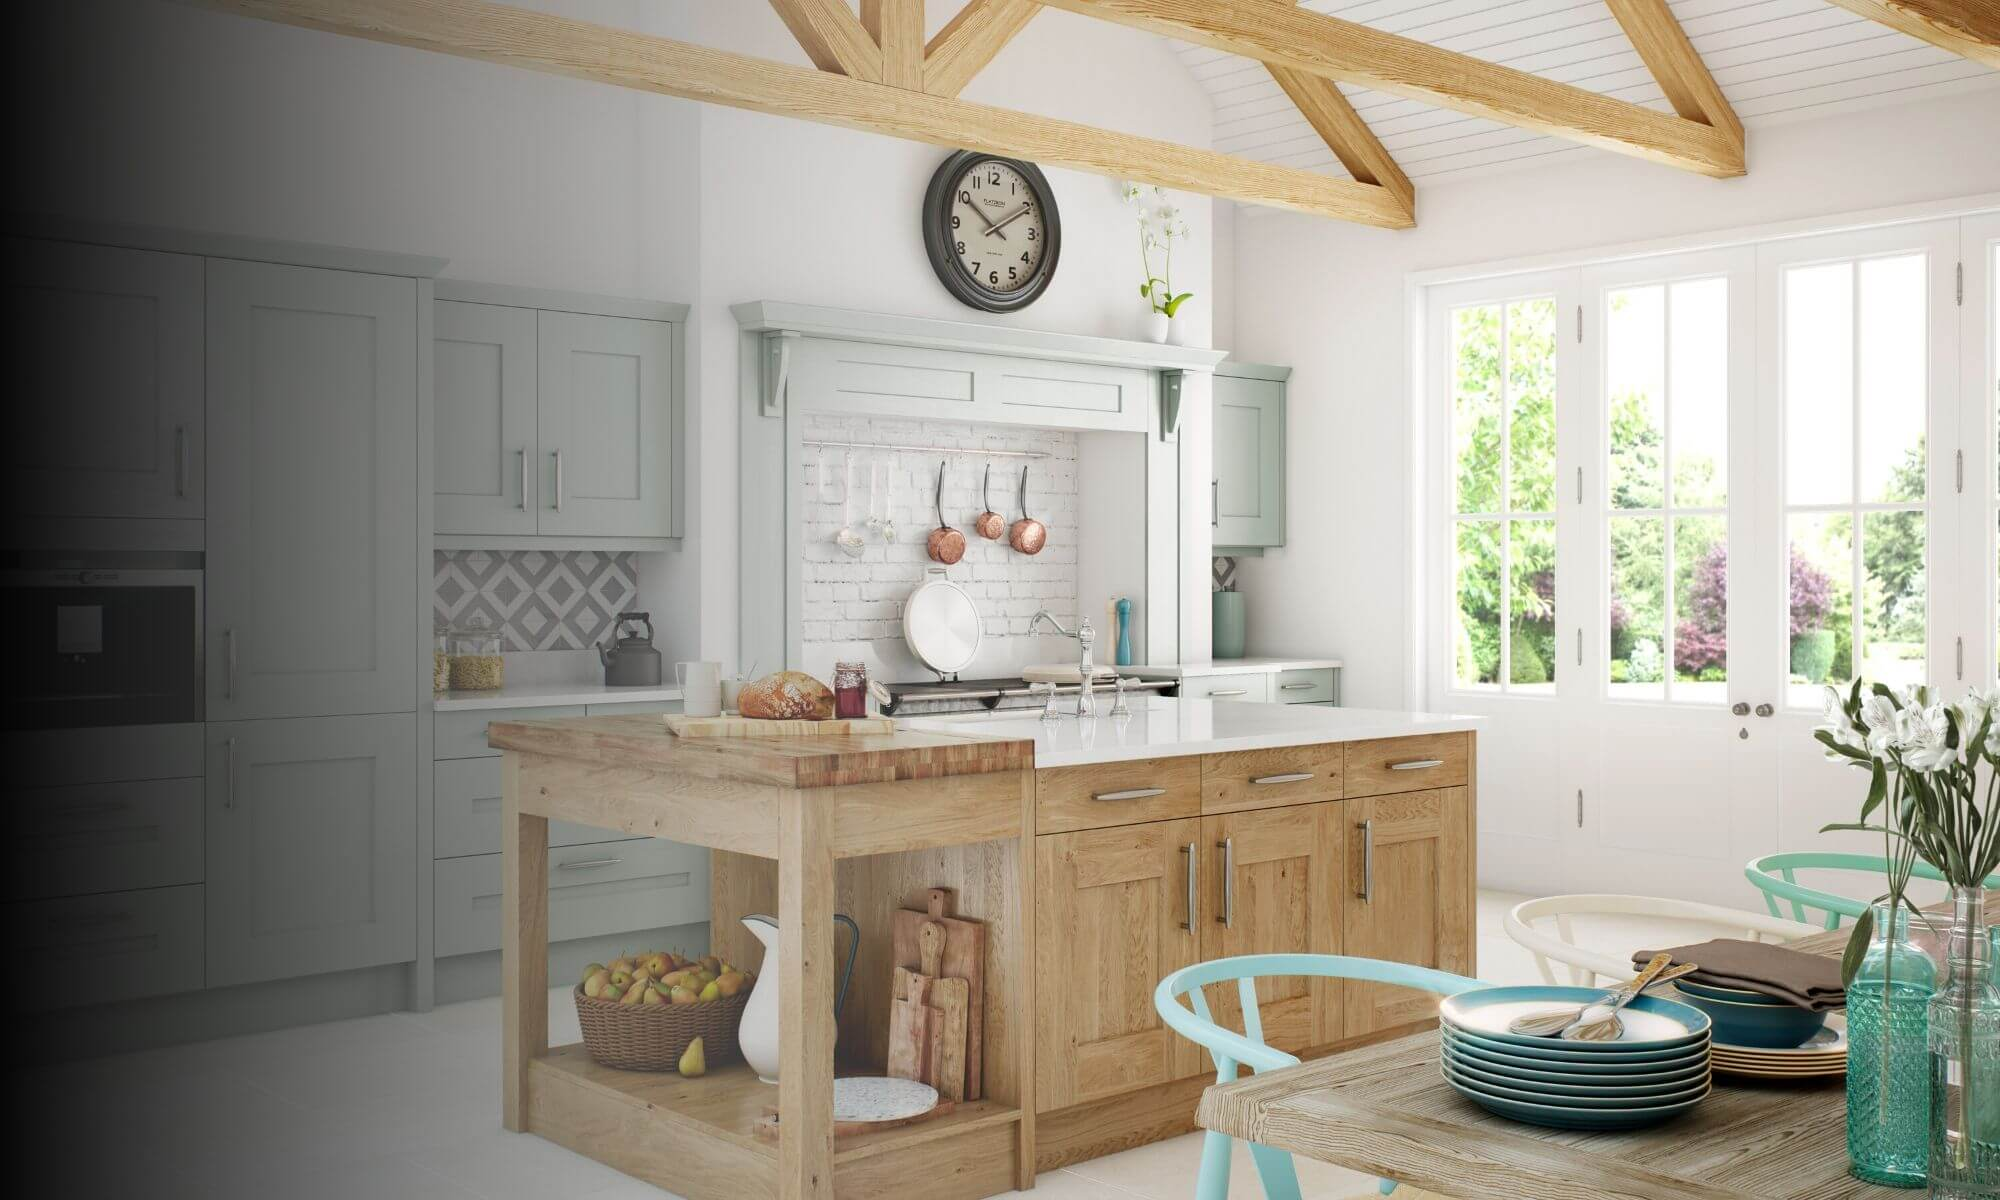 Traditional kitchen with wooden island